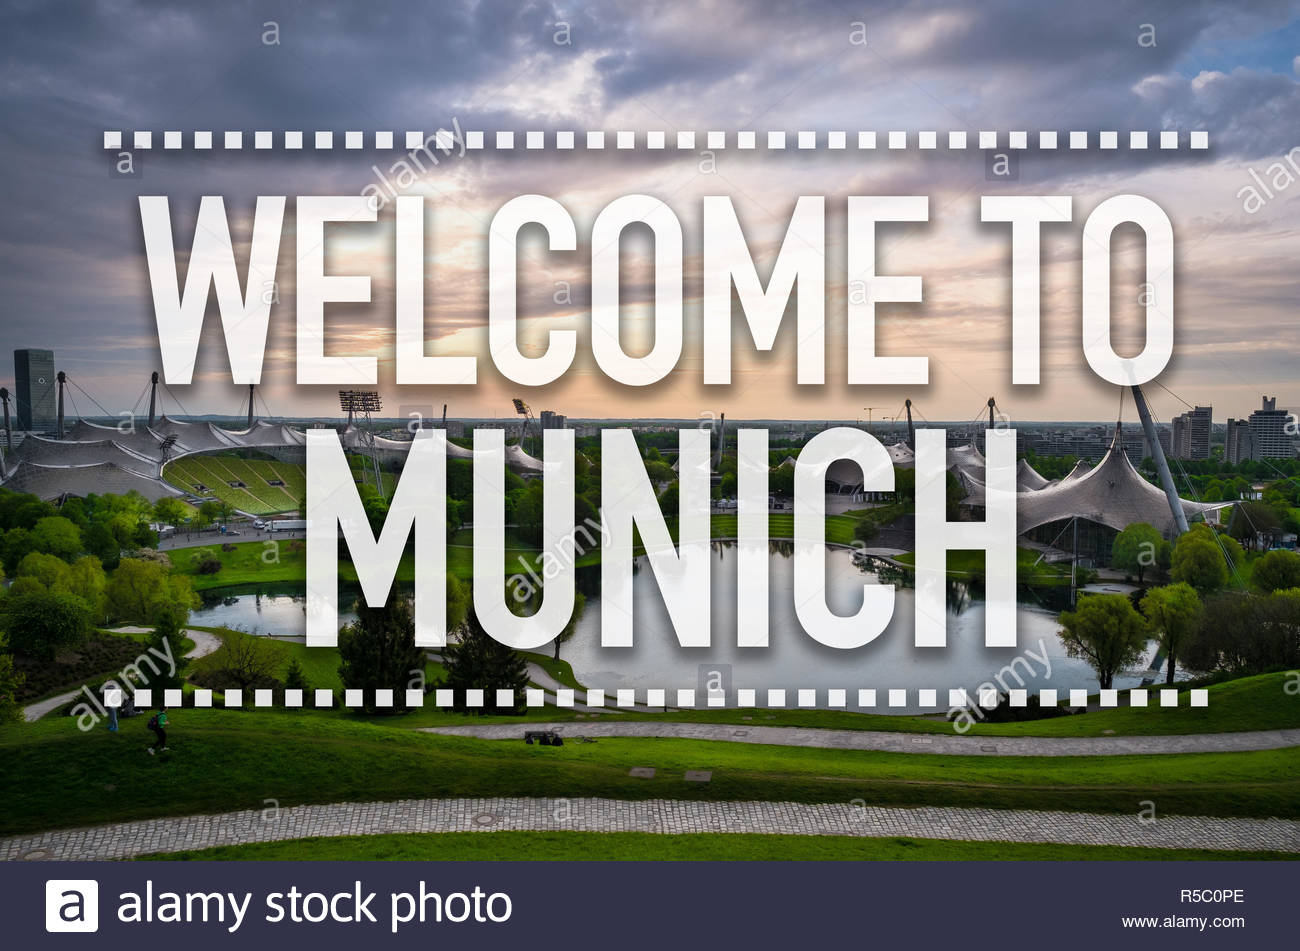 Welcome to Munich - Stock Image